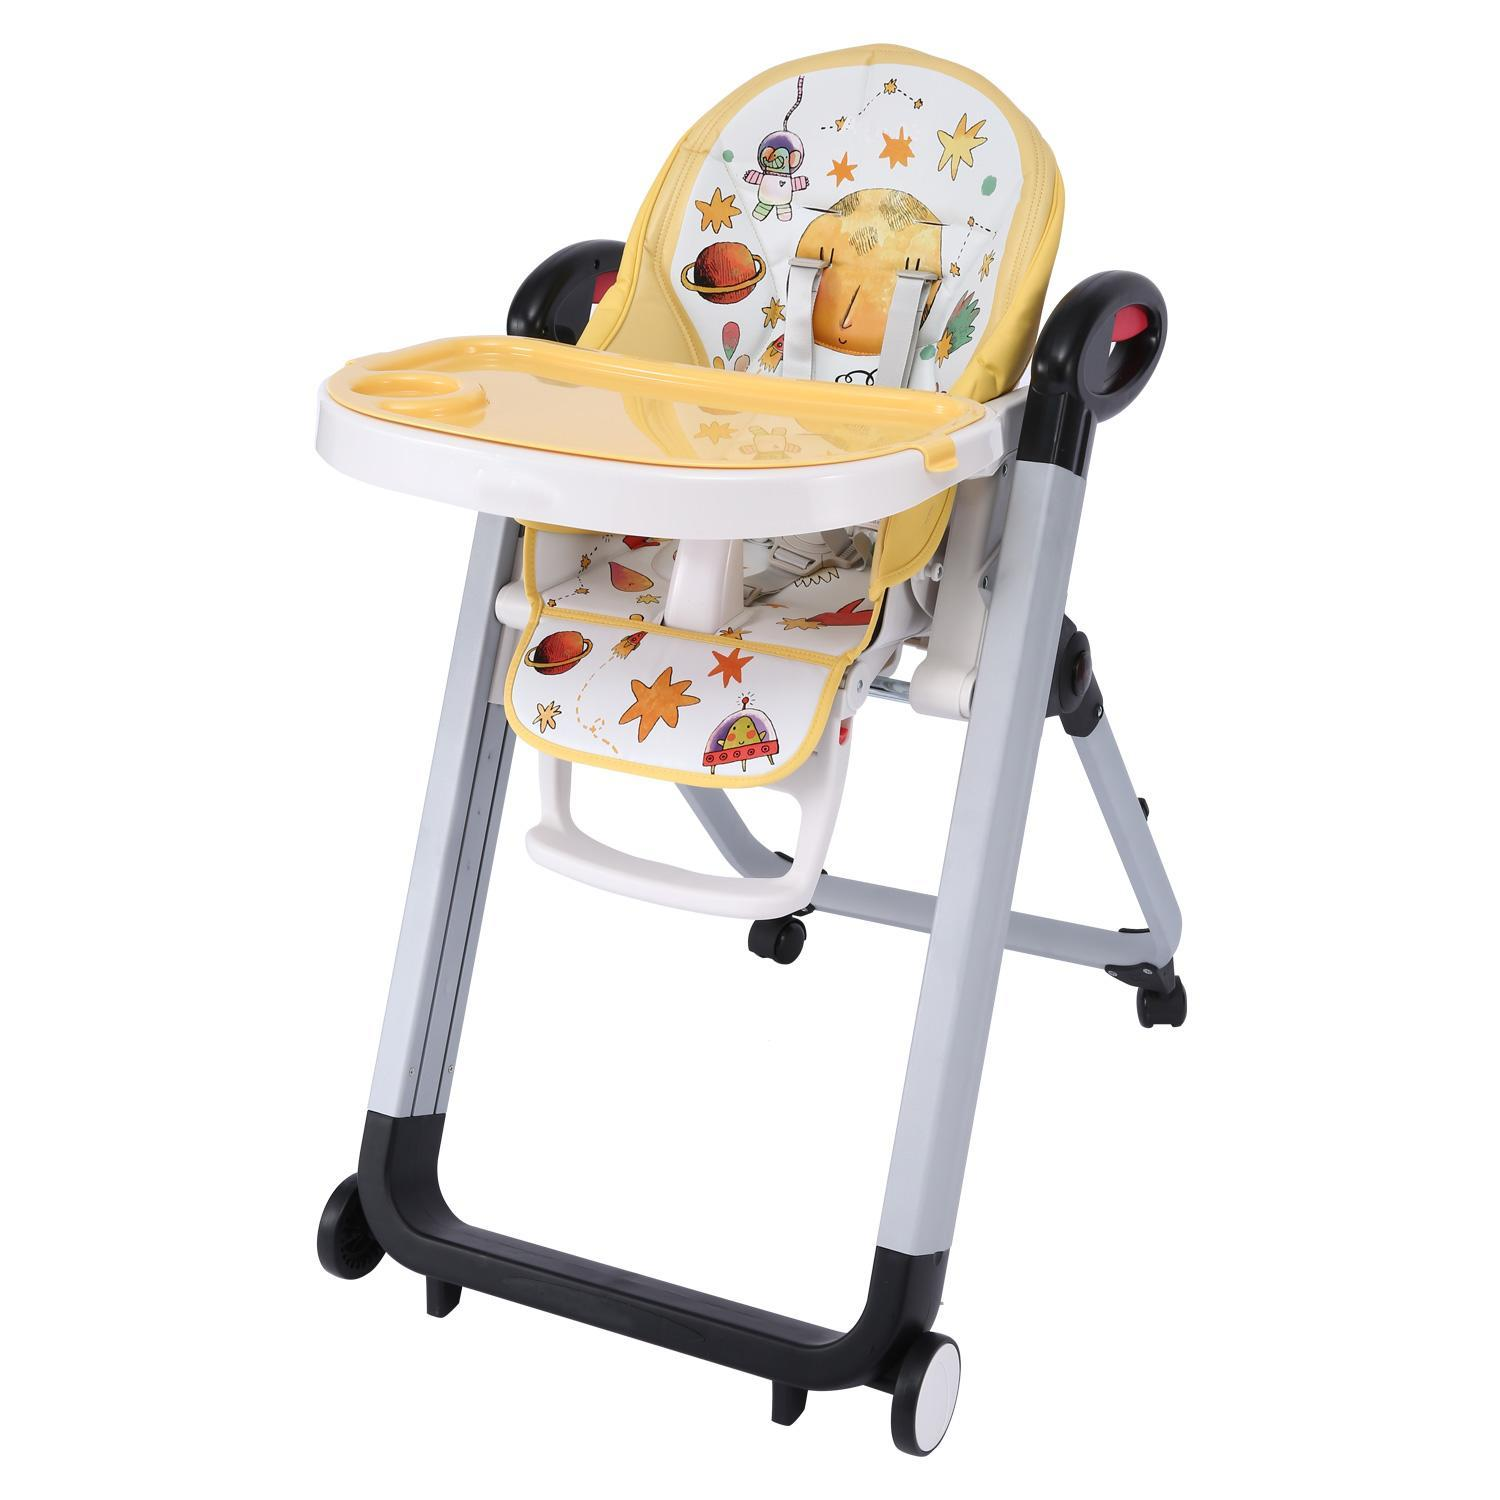 Dailydeal Multi-functional Baby High Feeding Chair.Full R...